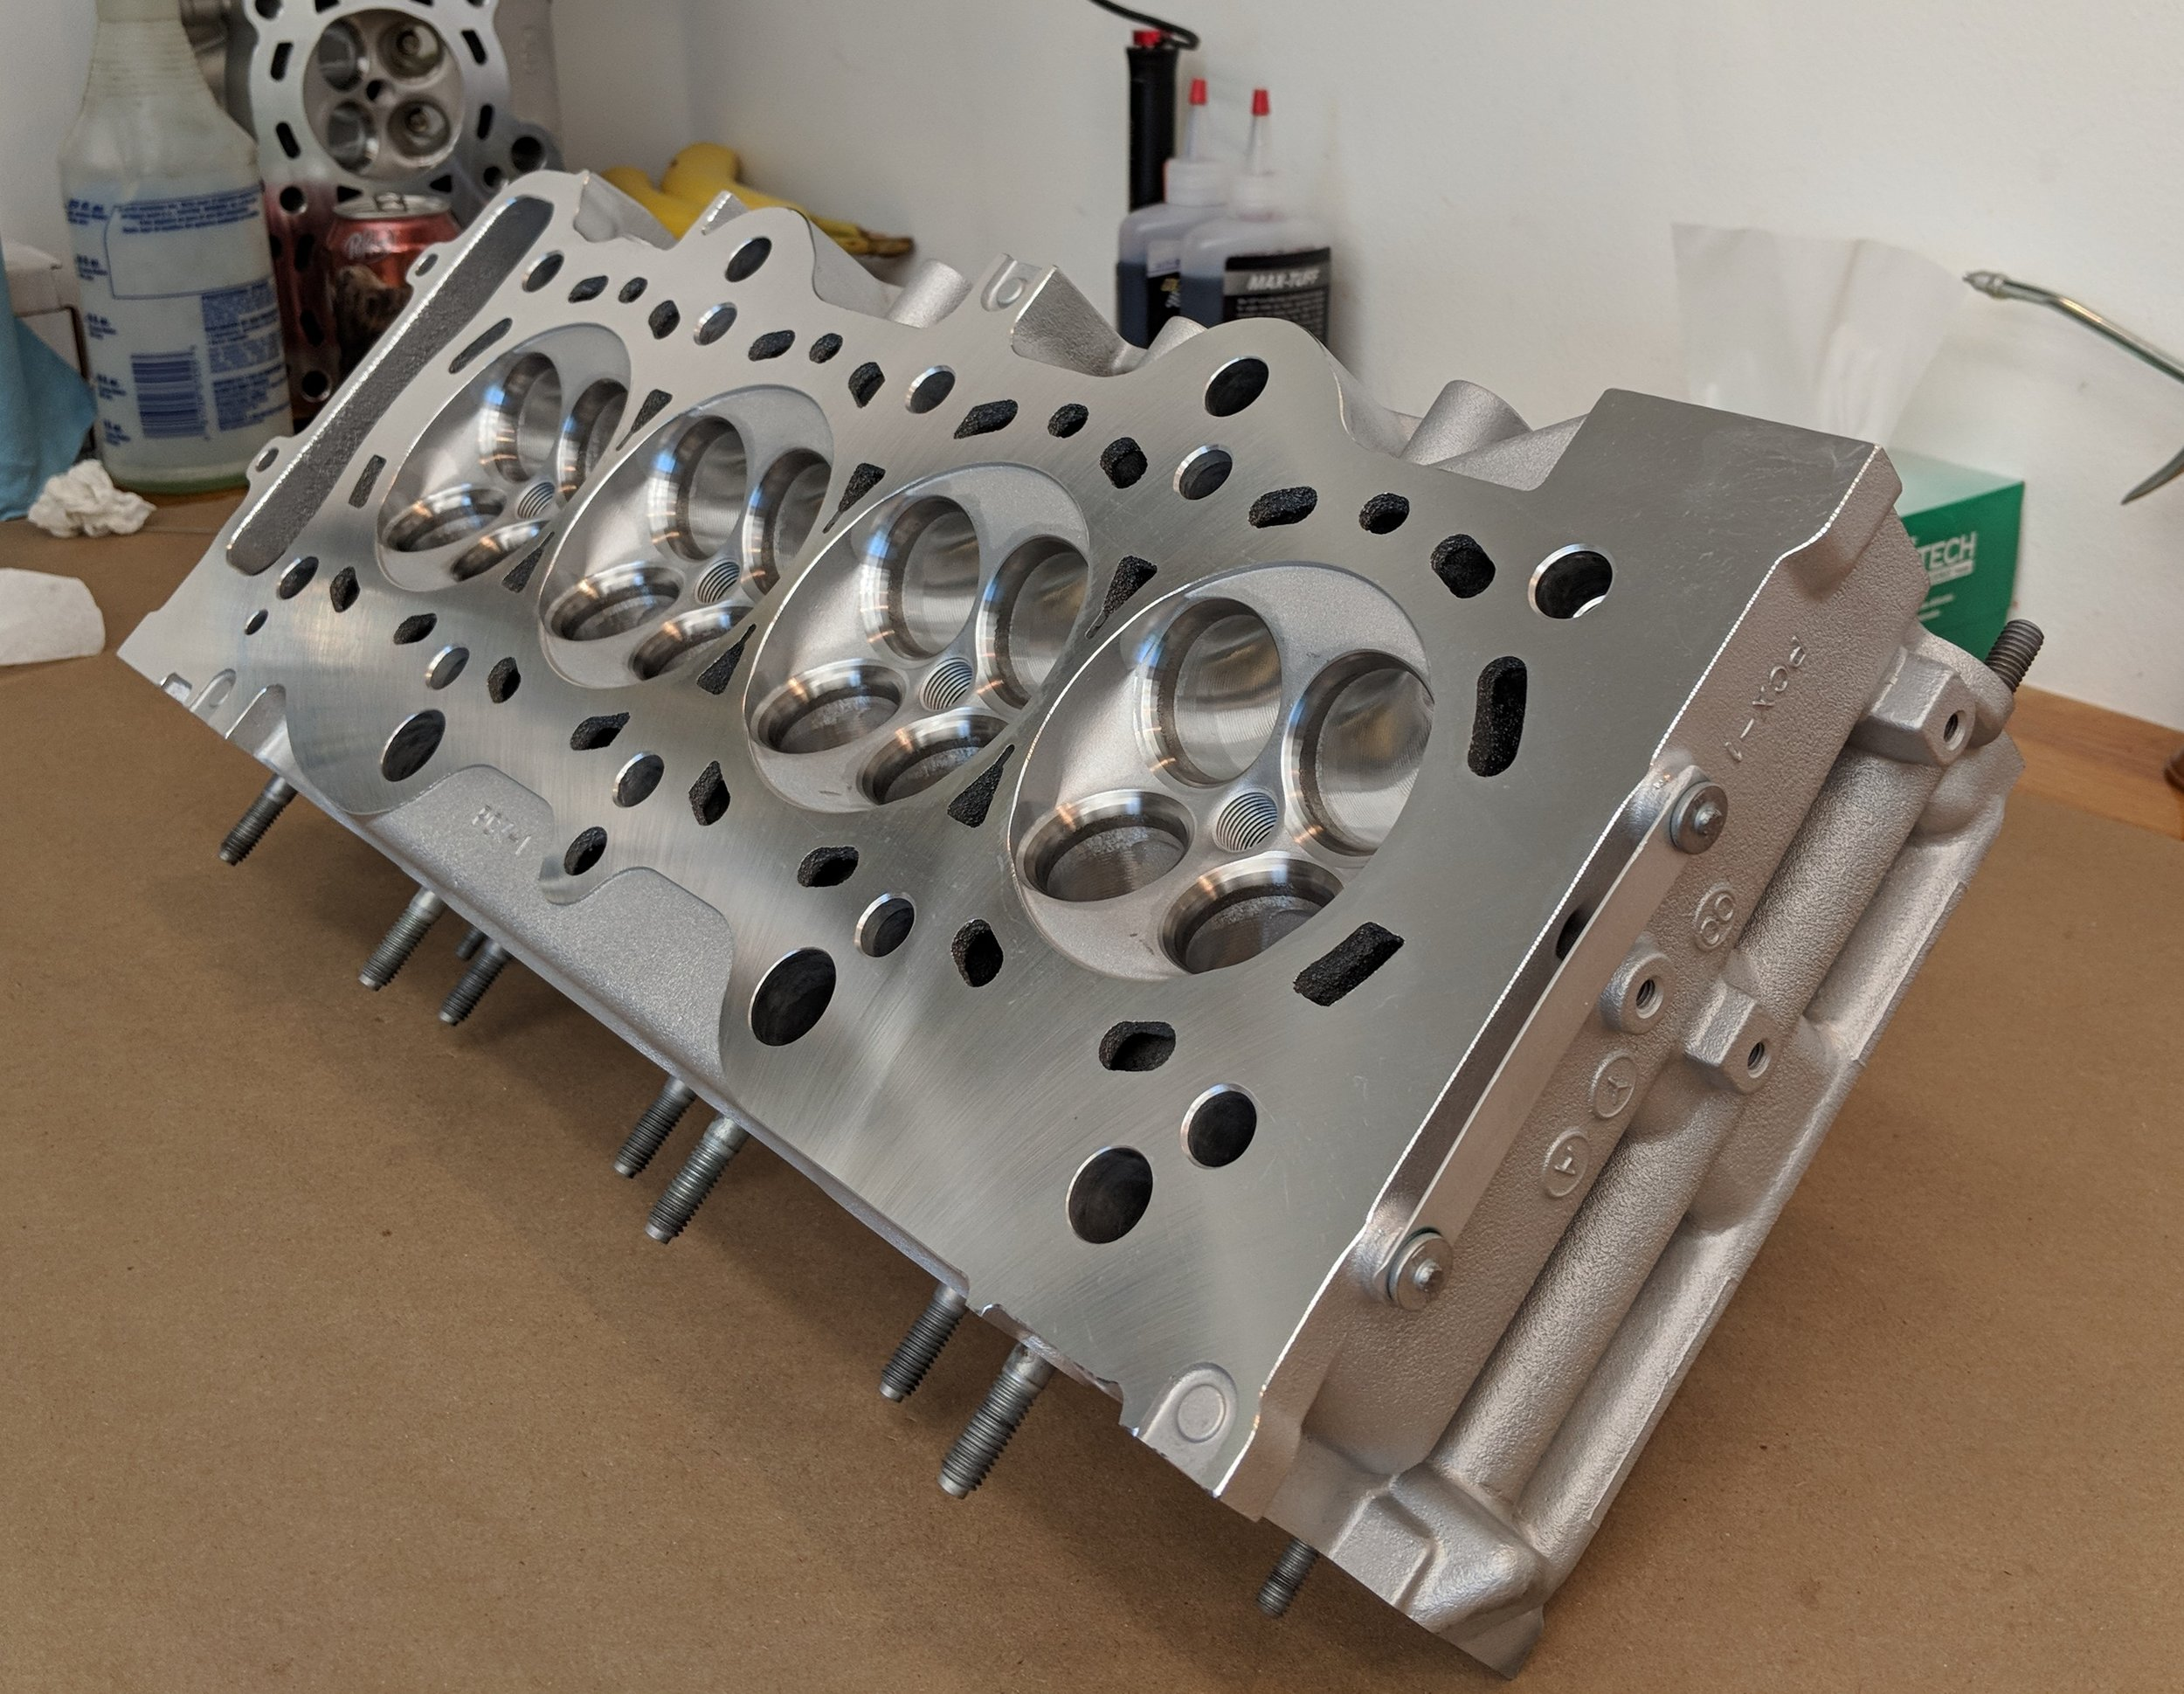 4 Piston Racing is known for their cylinder heads and race engines. Impeccable work and dedication to racing make them standout.